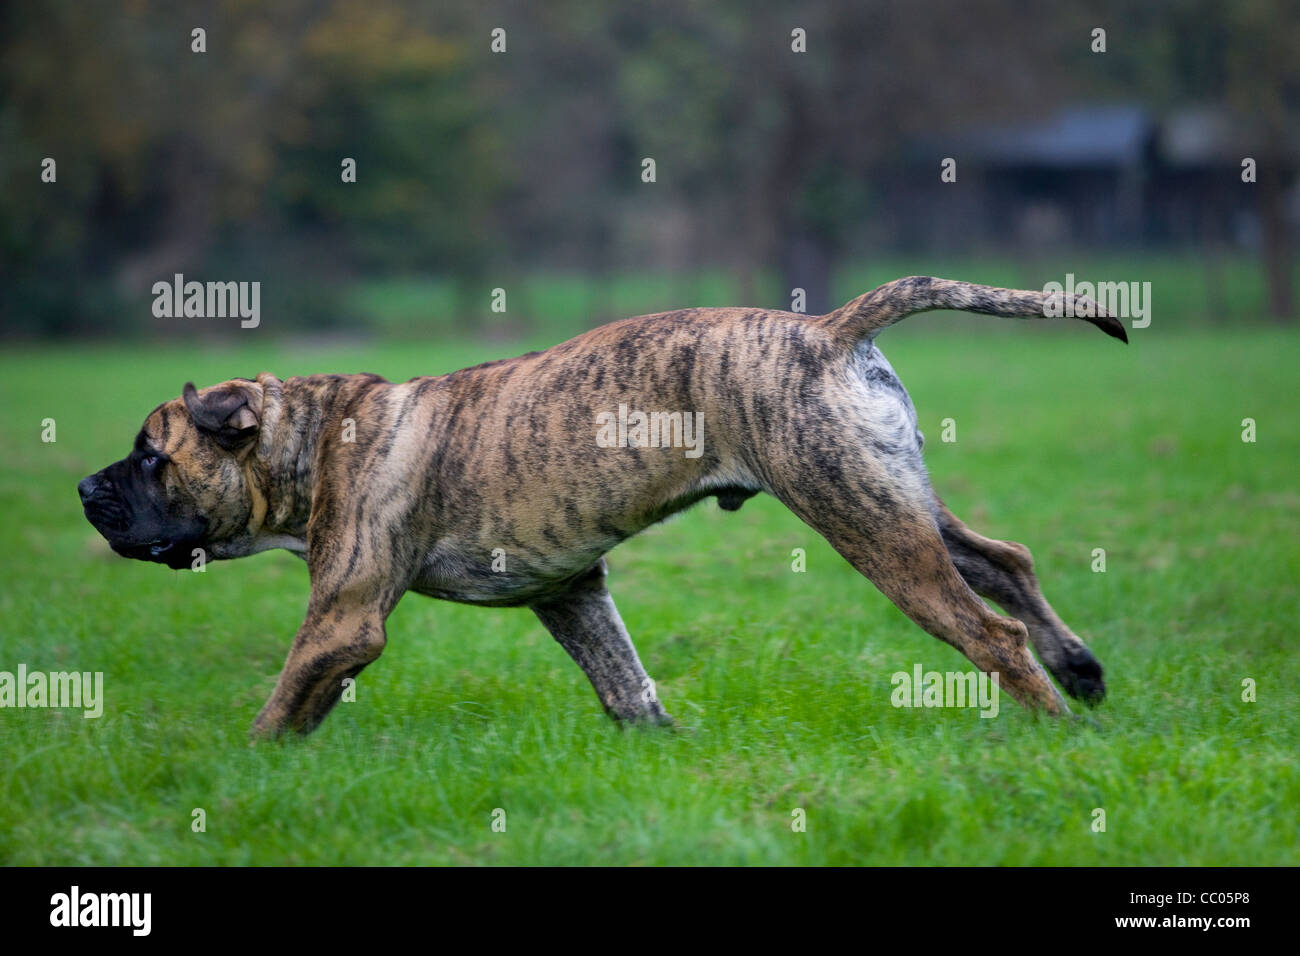 Boerboel, mastiff dog breed from South Africa, running in garden Stock Photo